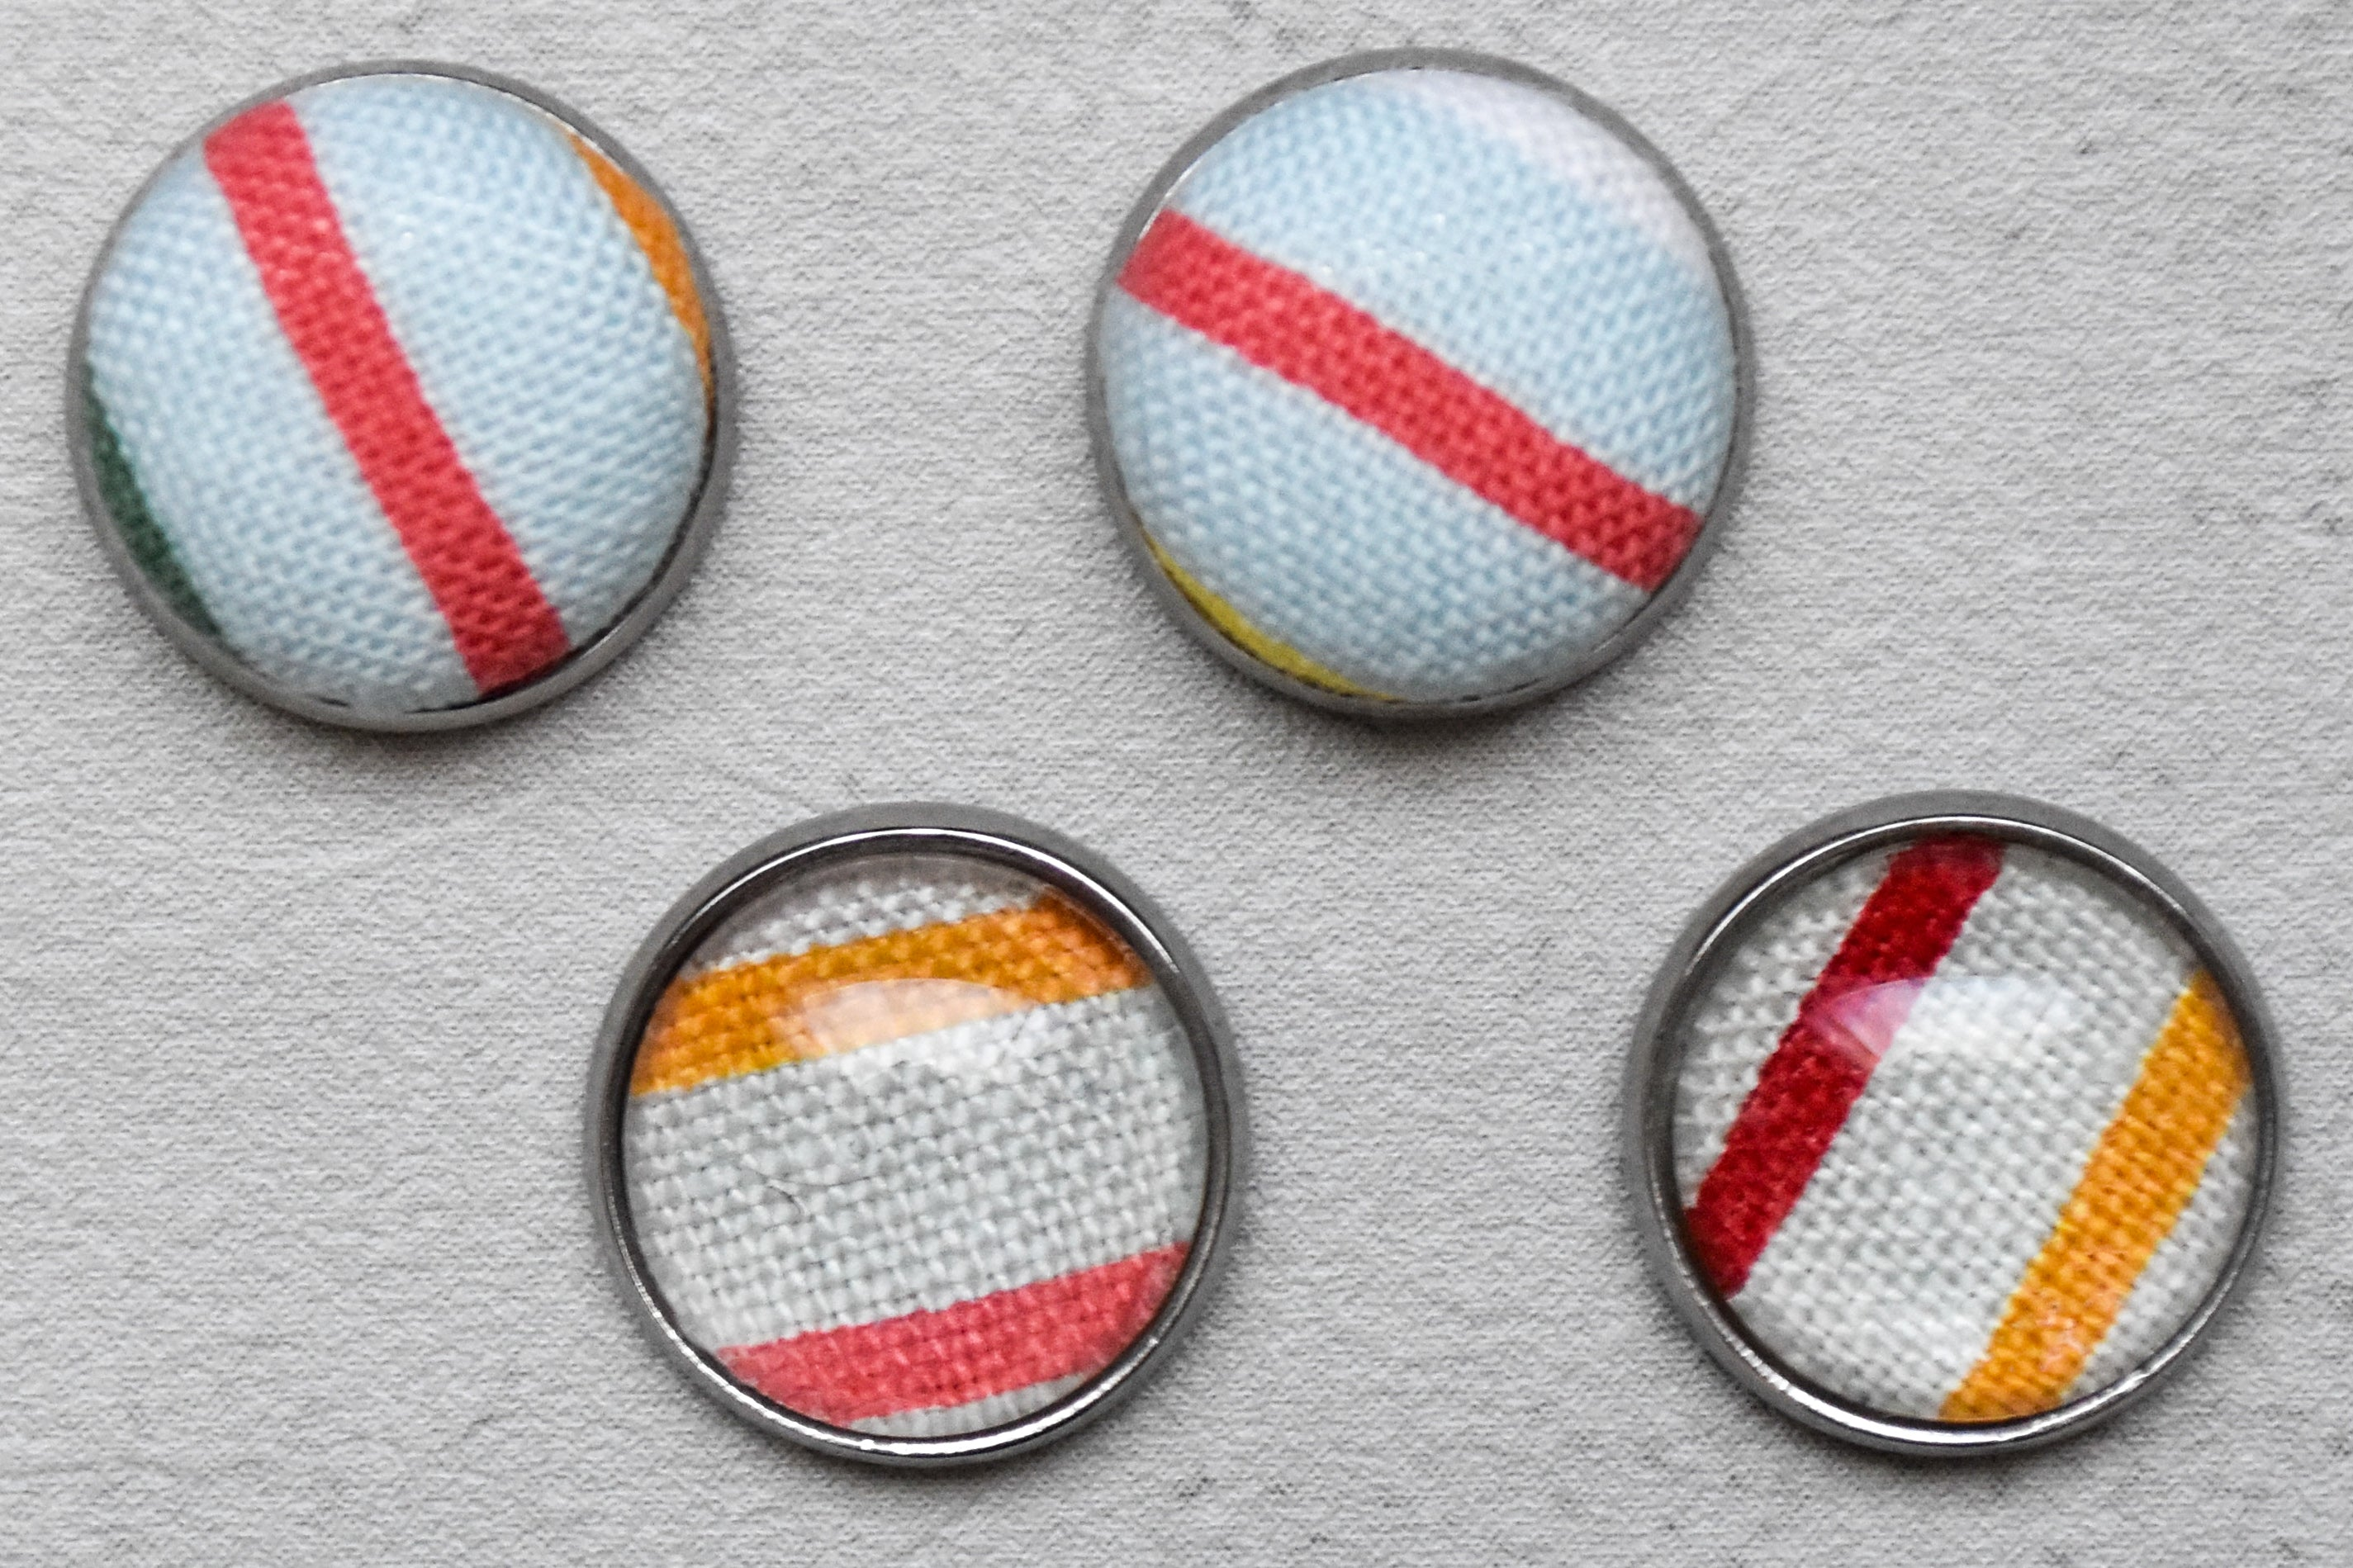 Fruit Stripes 20mm Lapel Pin - Momako Designs